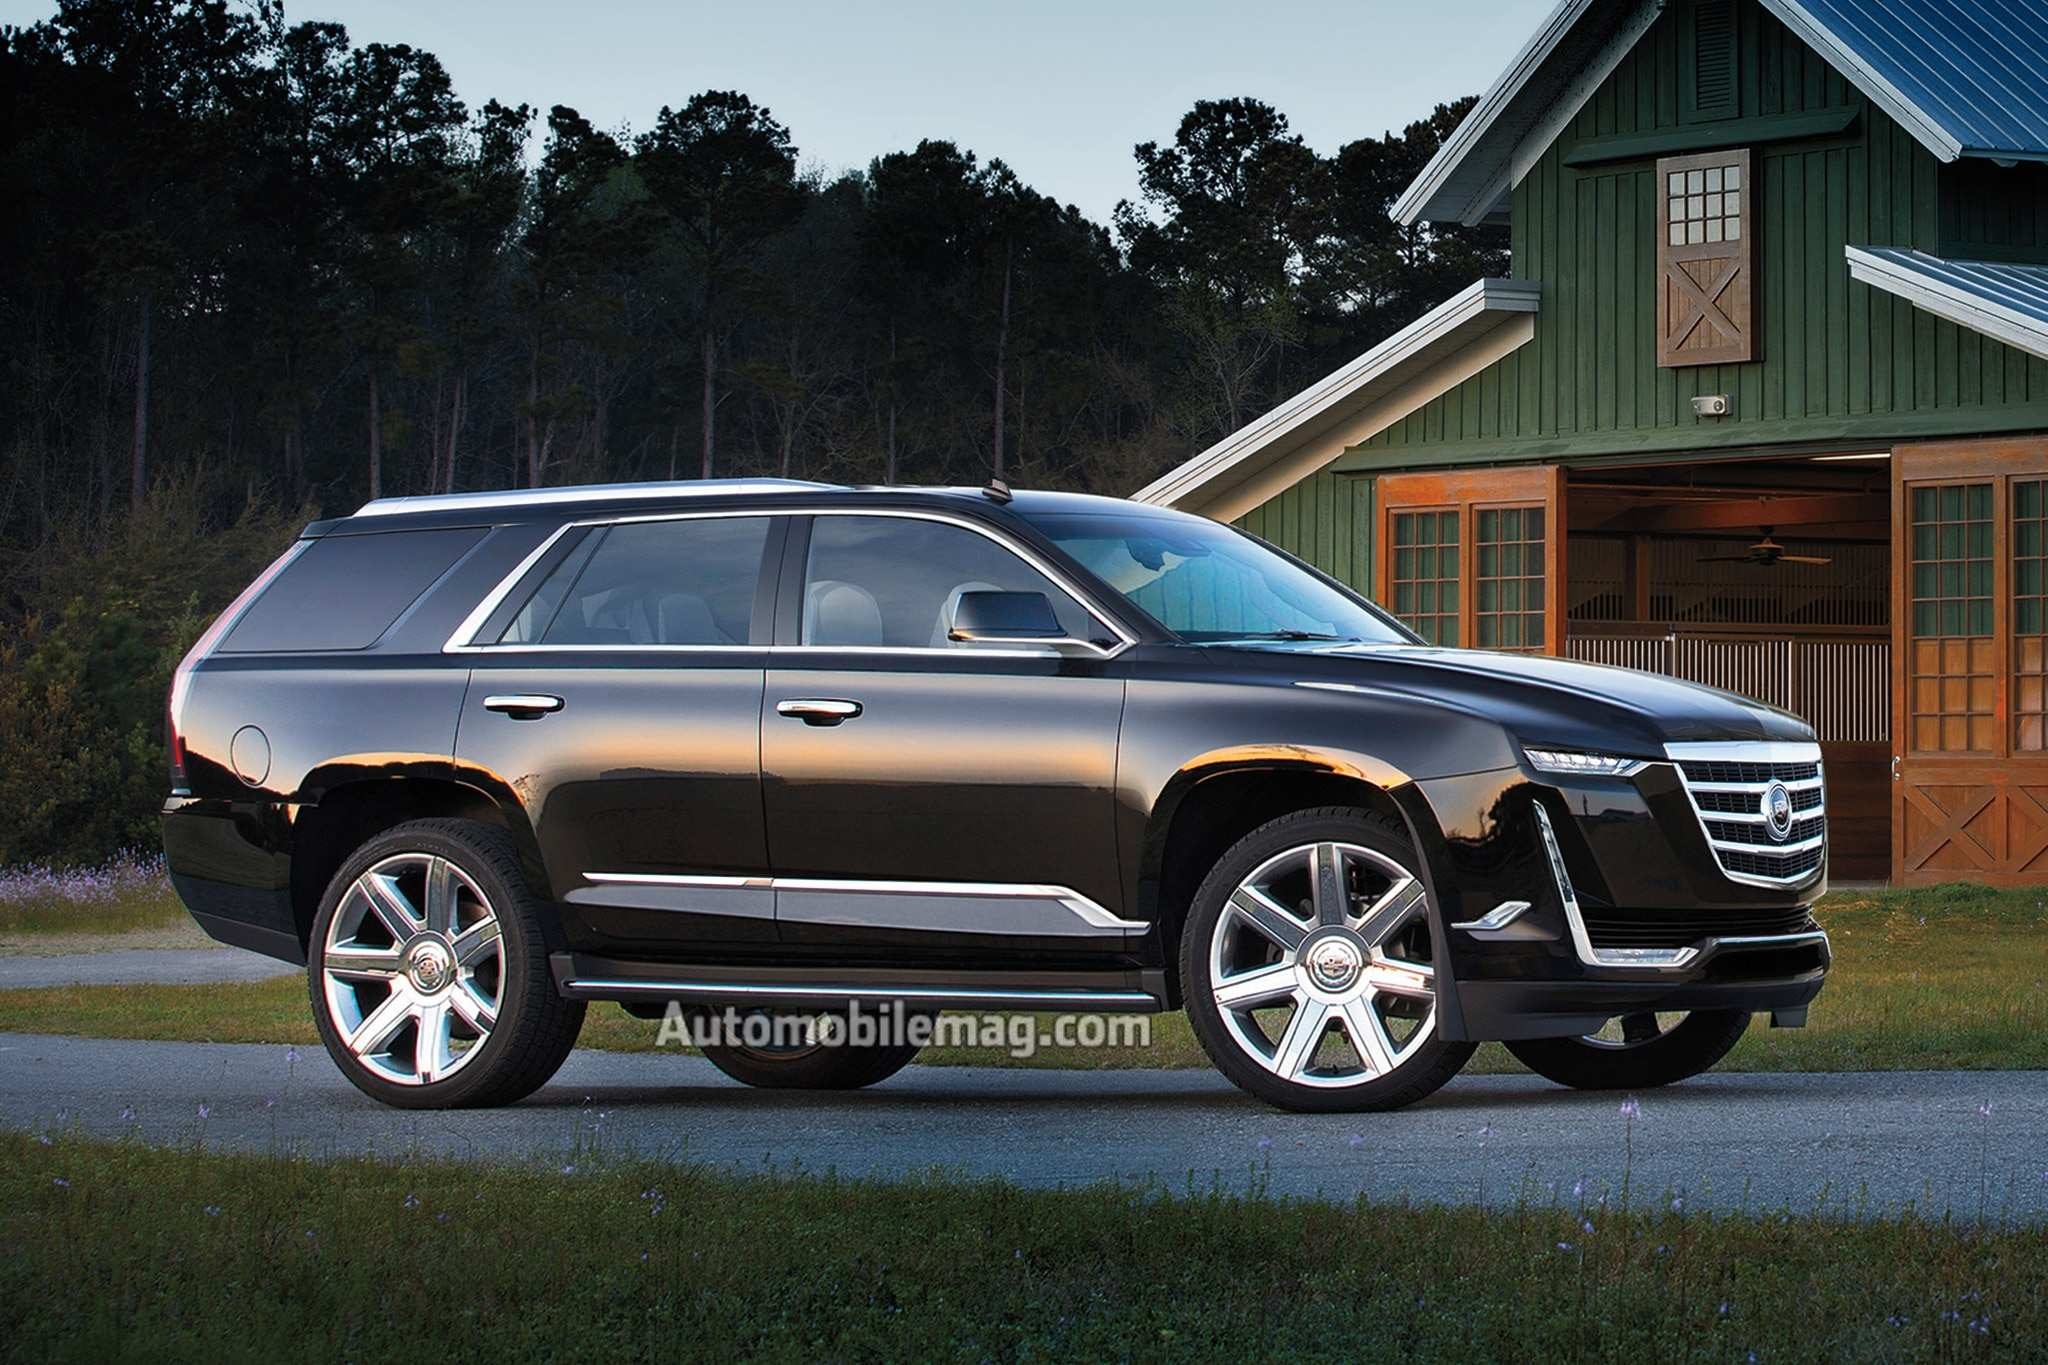 27 Best 2020 Cadillac Escalade Images Exterior